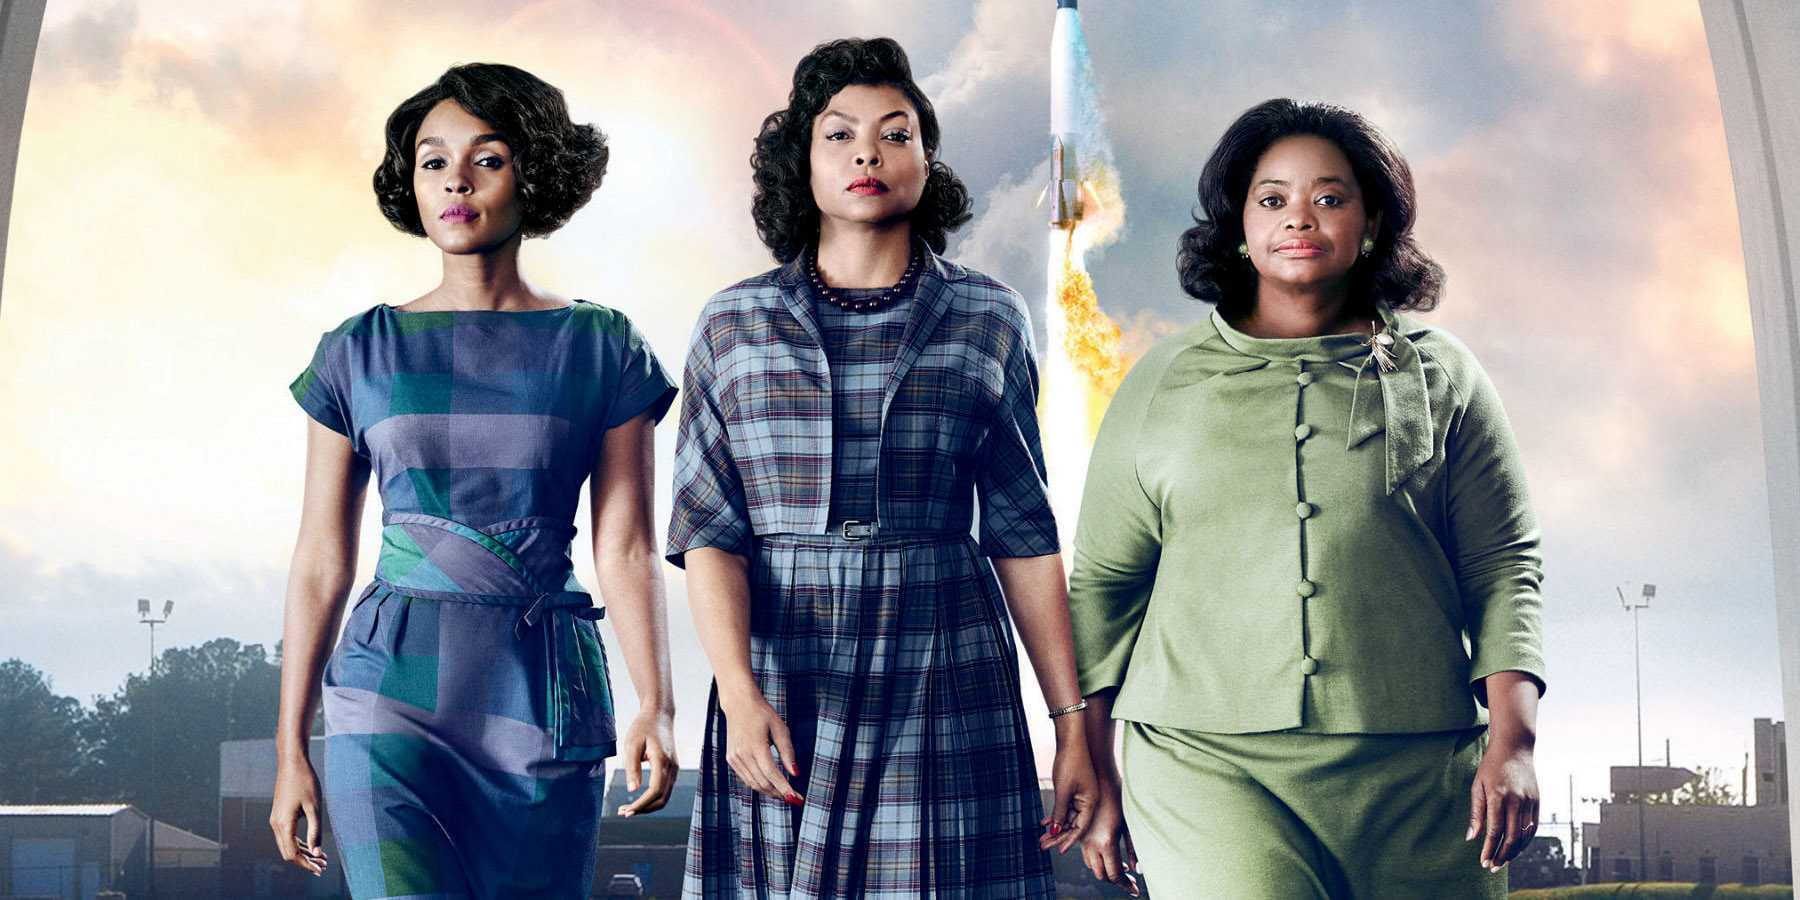 Octavia Spencer Offered Free Screening Of 'Hidden Figures' For Low Income Families | Octavia Spencer